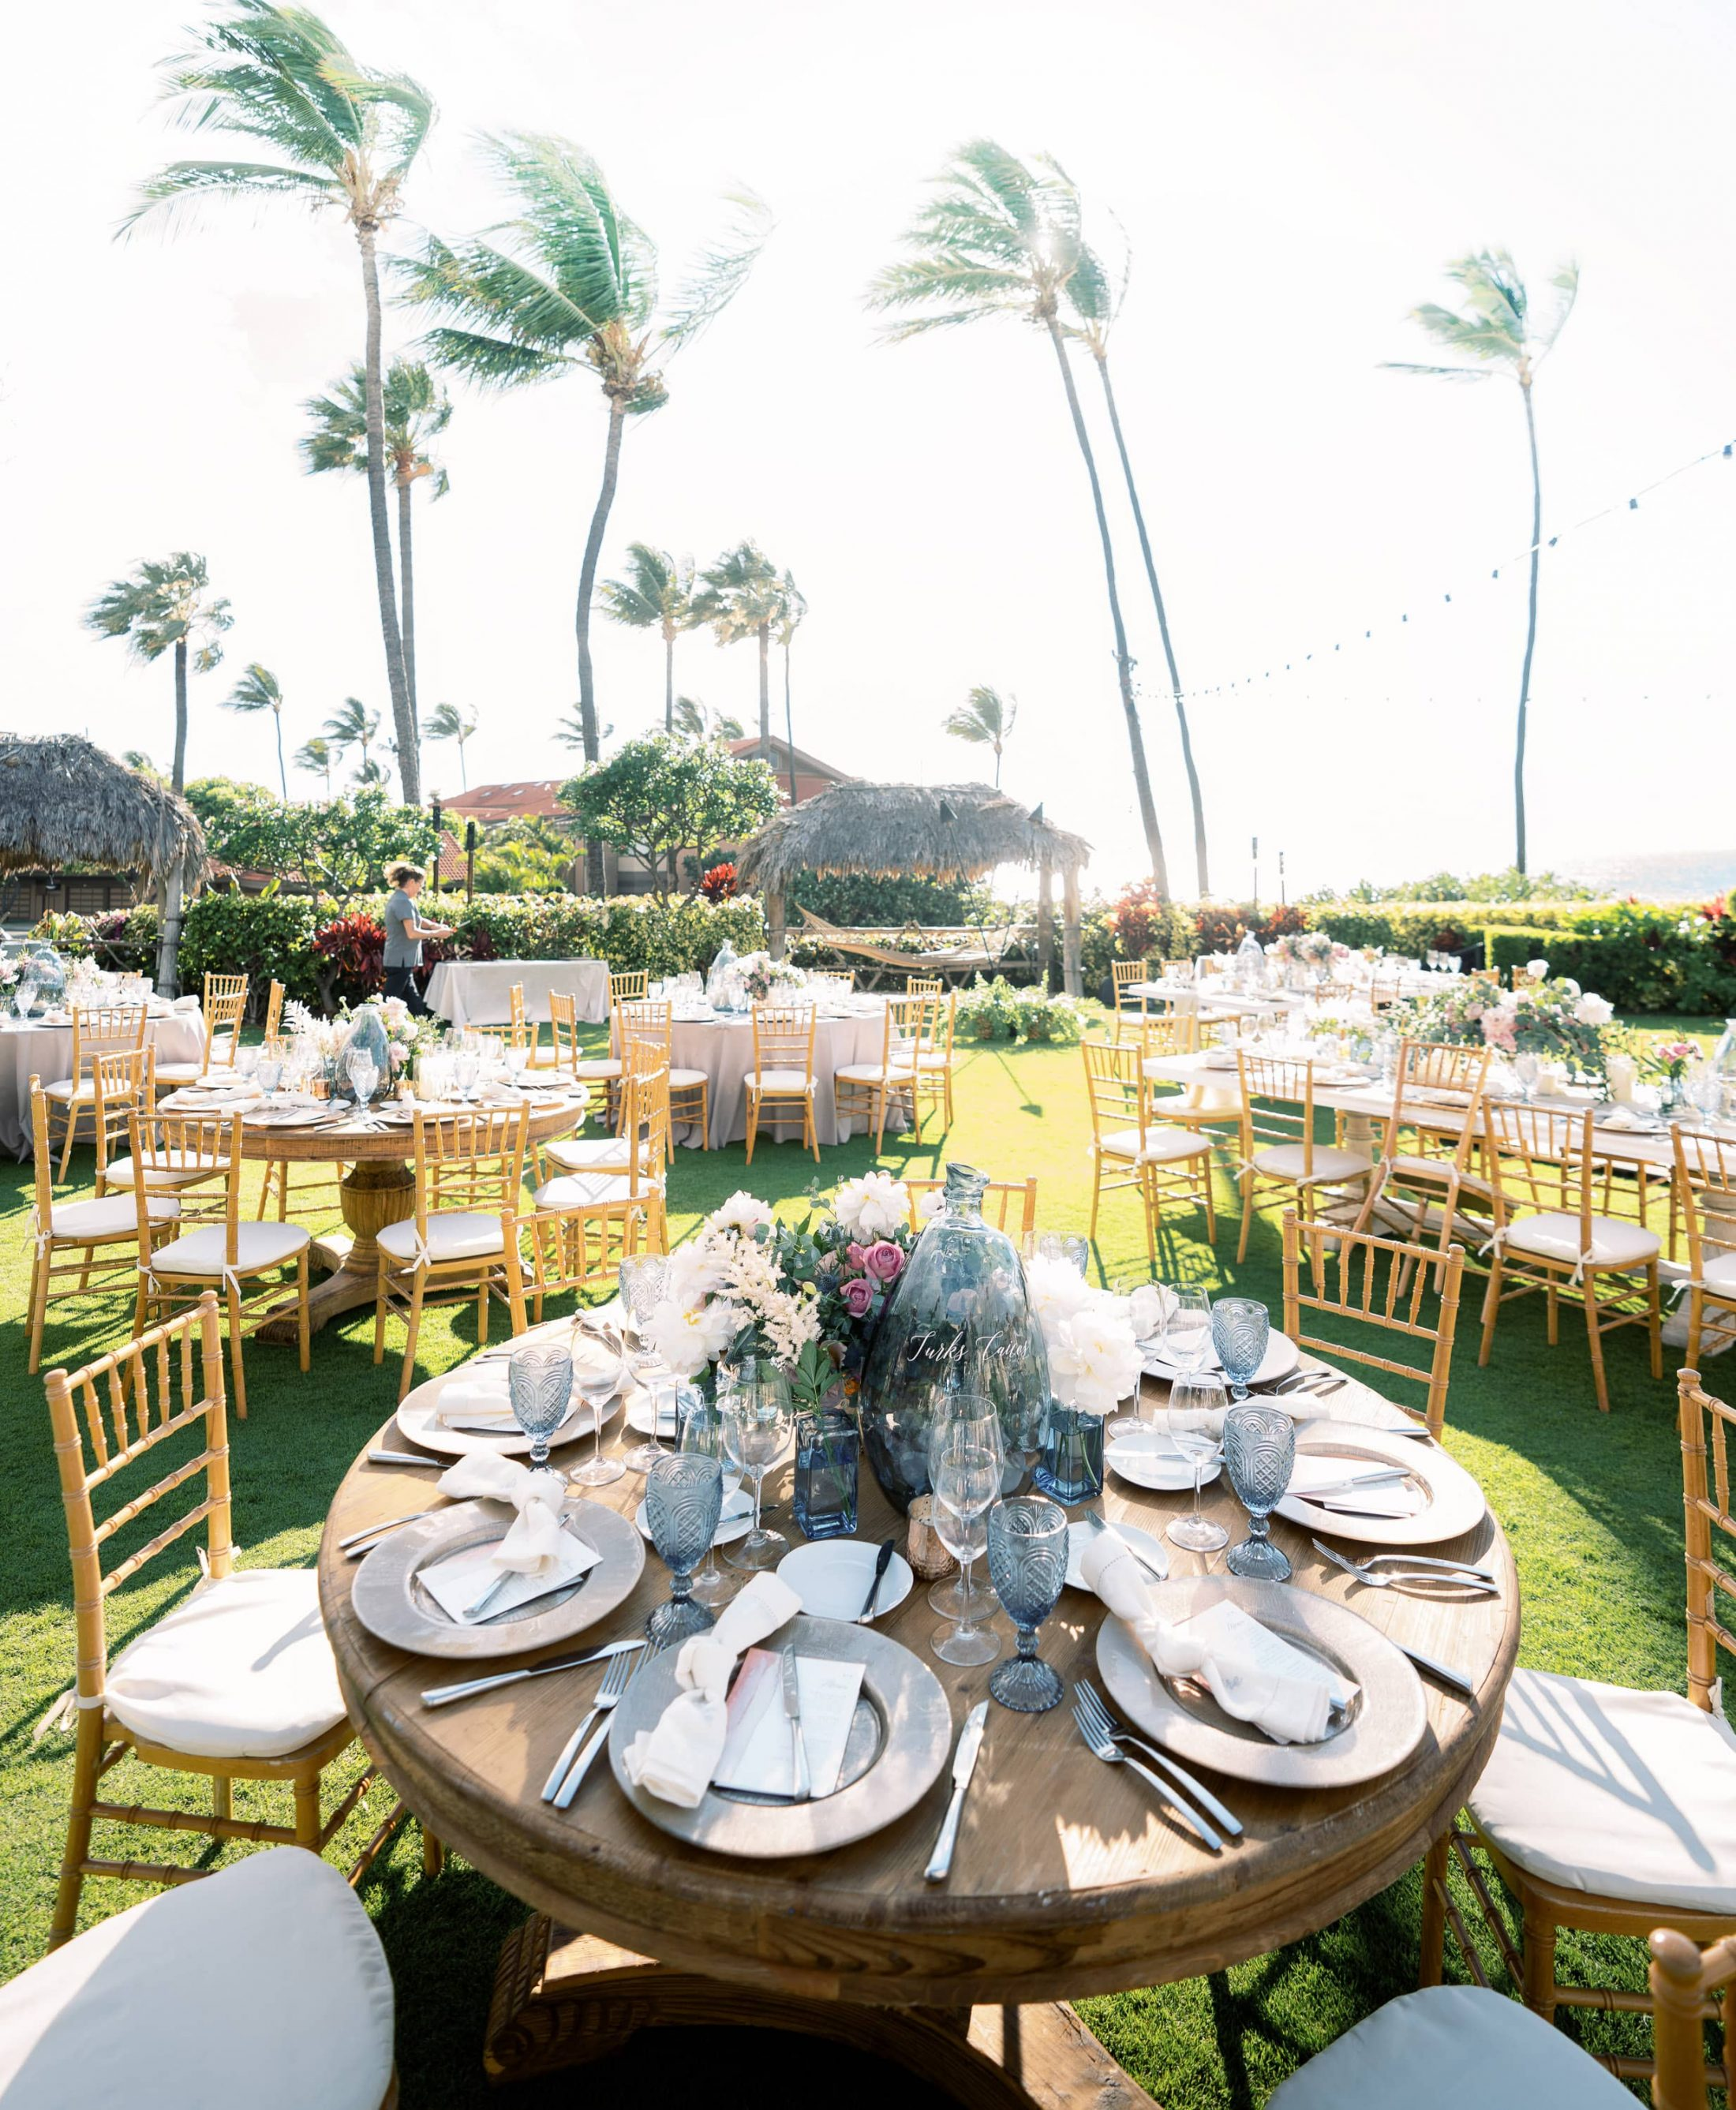 Outdoor reception under palm trees at Maui wedding at Four Seasons Resort Maui in Wailea, Hawaii | Photo by James x Schulze